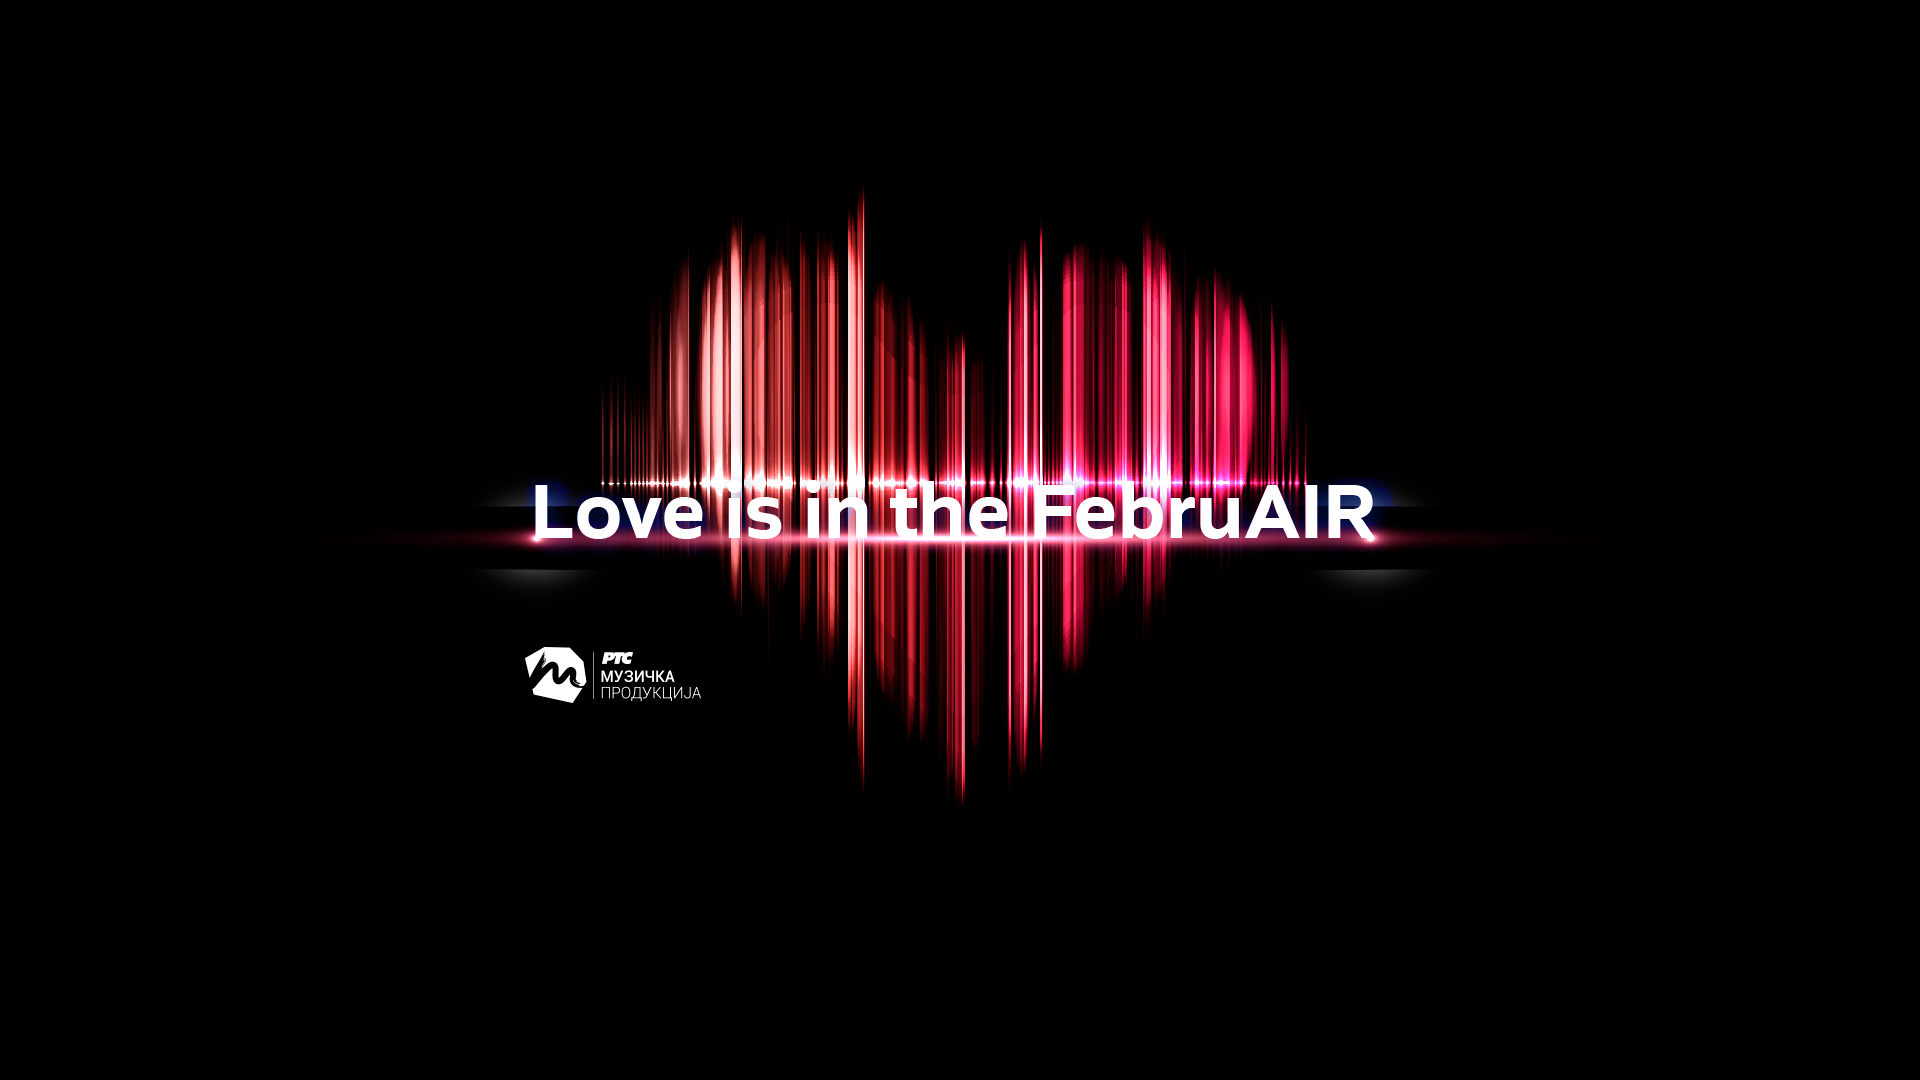 February - the month of love!